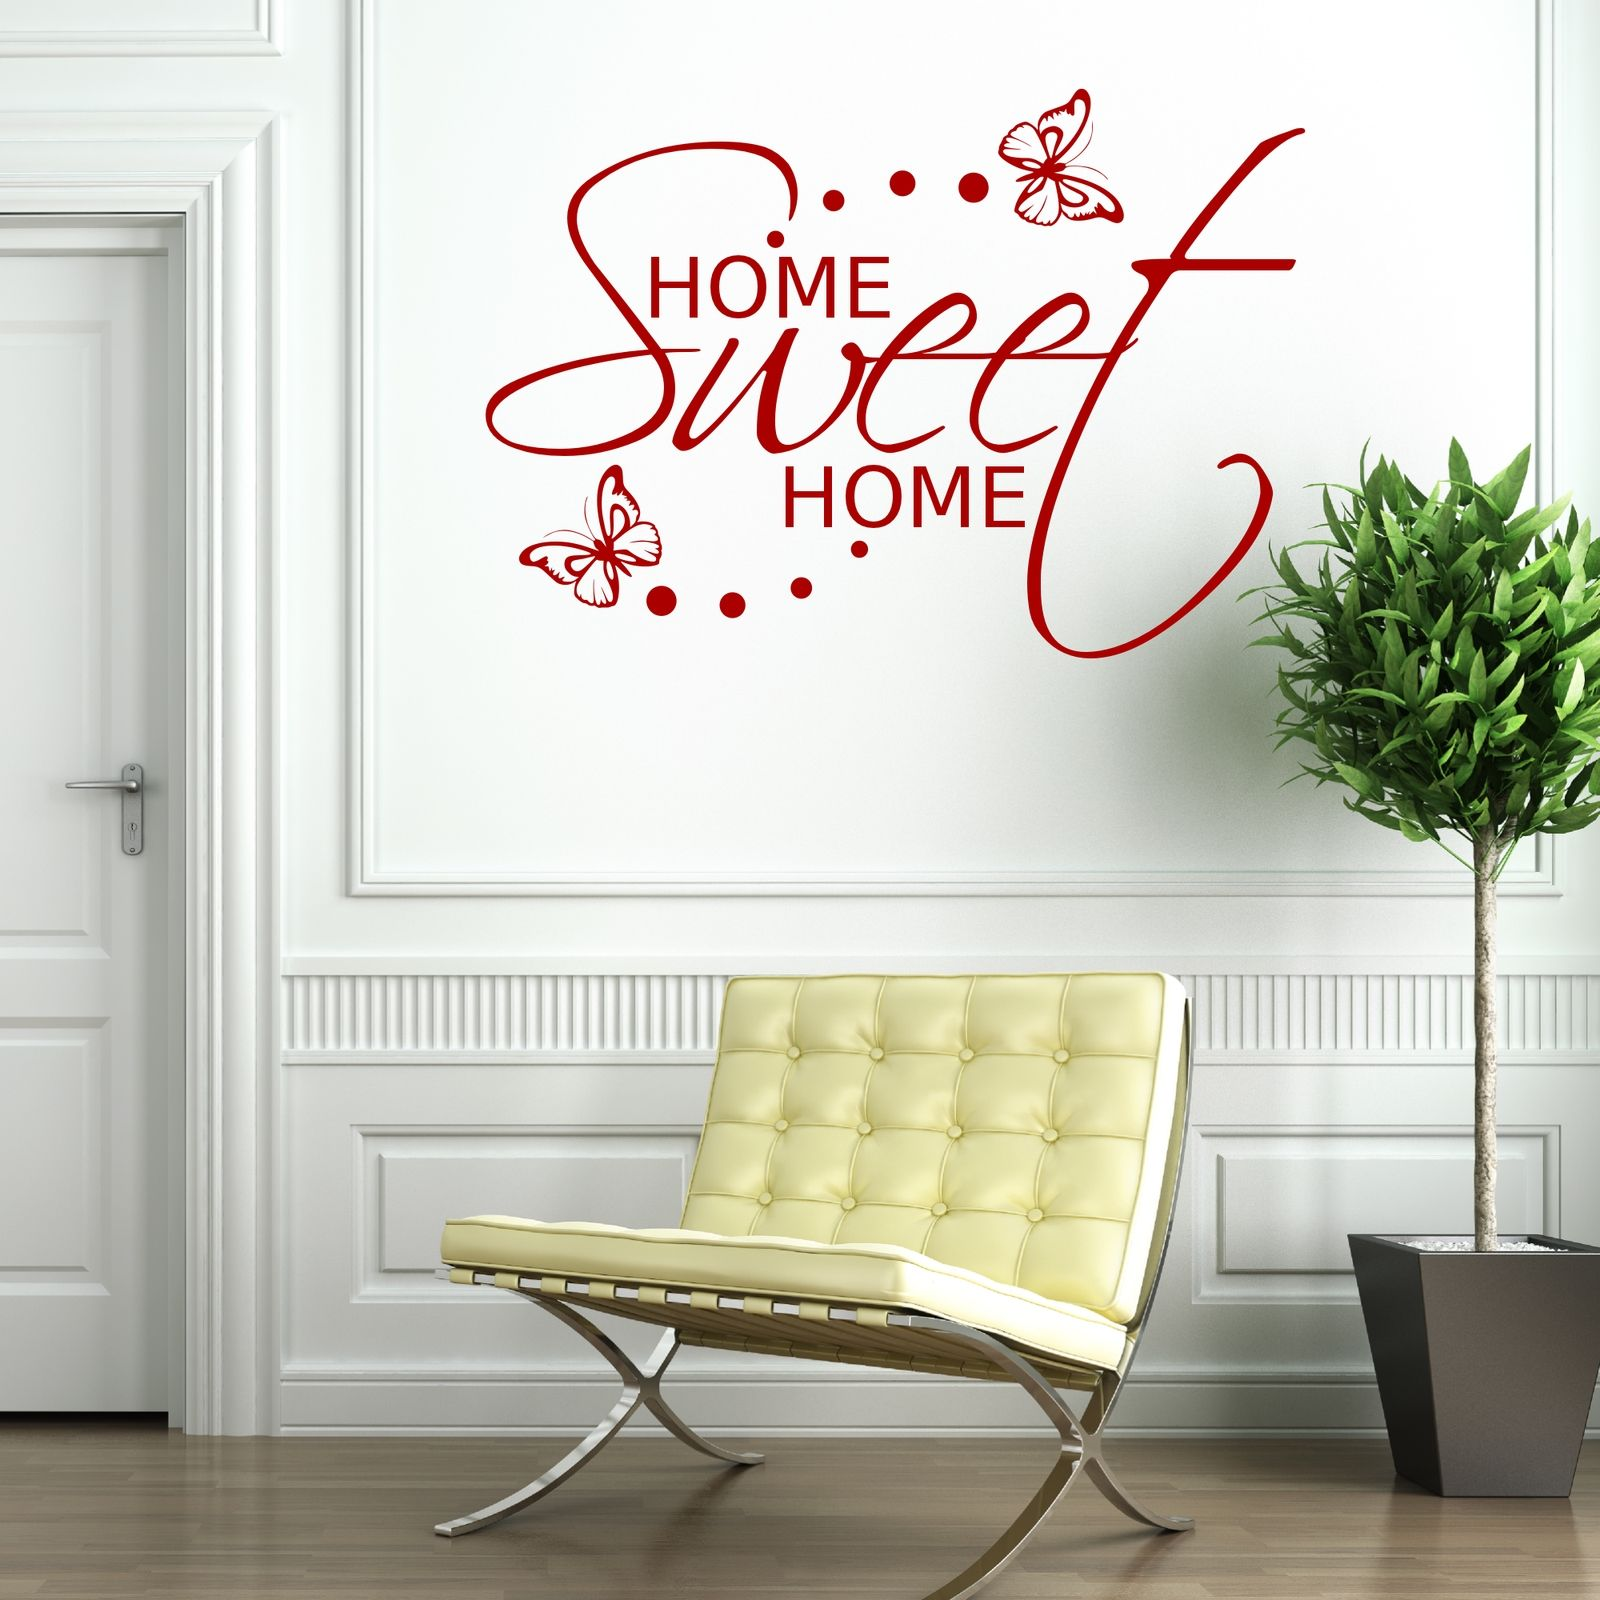 home sweet home wall sticker art room gift decal mural transfer sticker wsd493 ebay. Black Bedroom Furniture Sets. Home Design Ideas